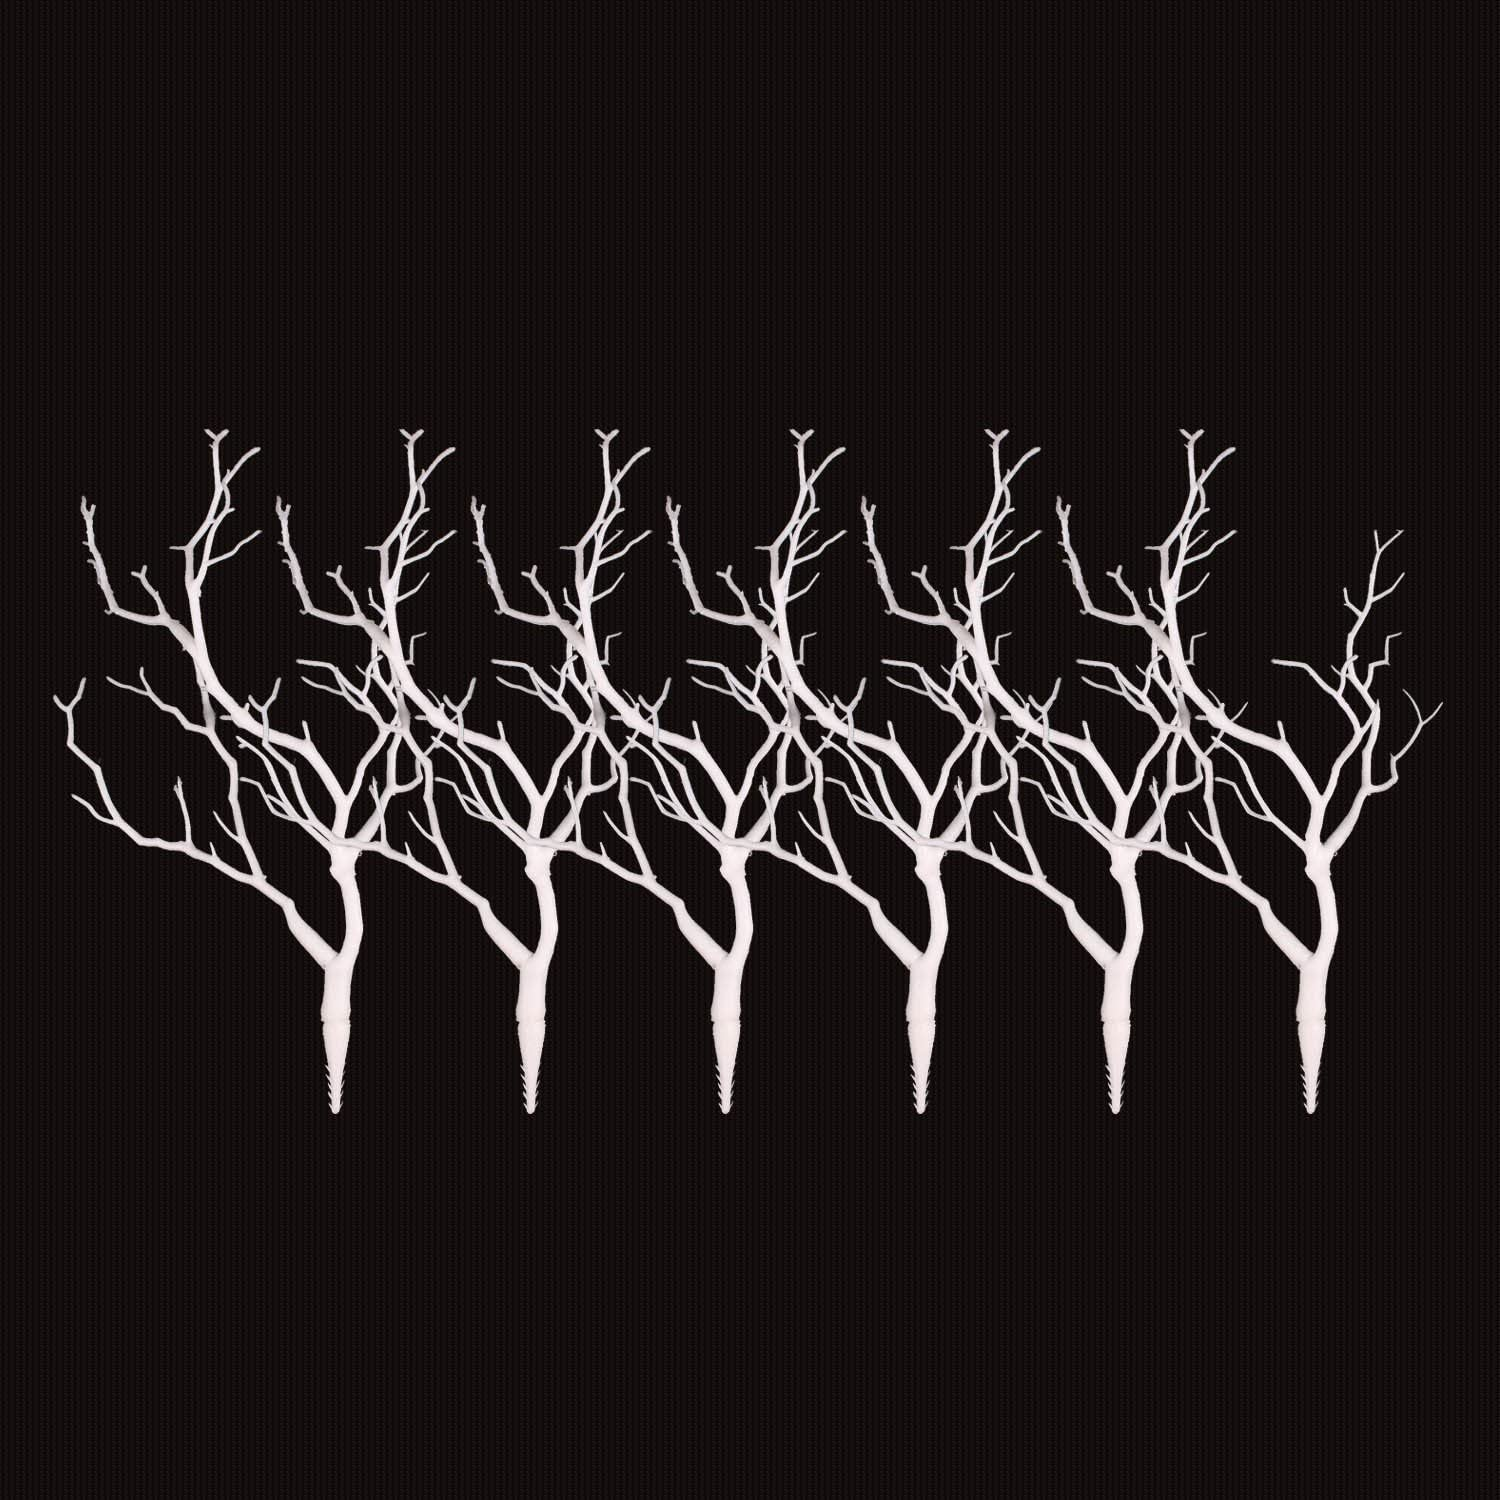 Sigdio Artificial Plastic Stems Bohemian Twigs Dried Tree Branches for Wedding Party Home Hotel Decoration (White, 6)